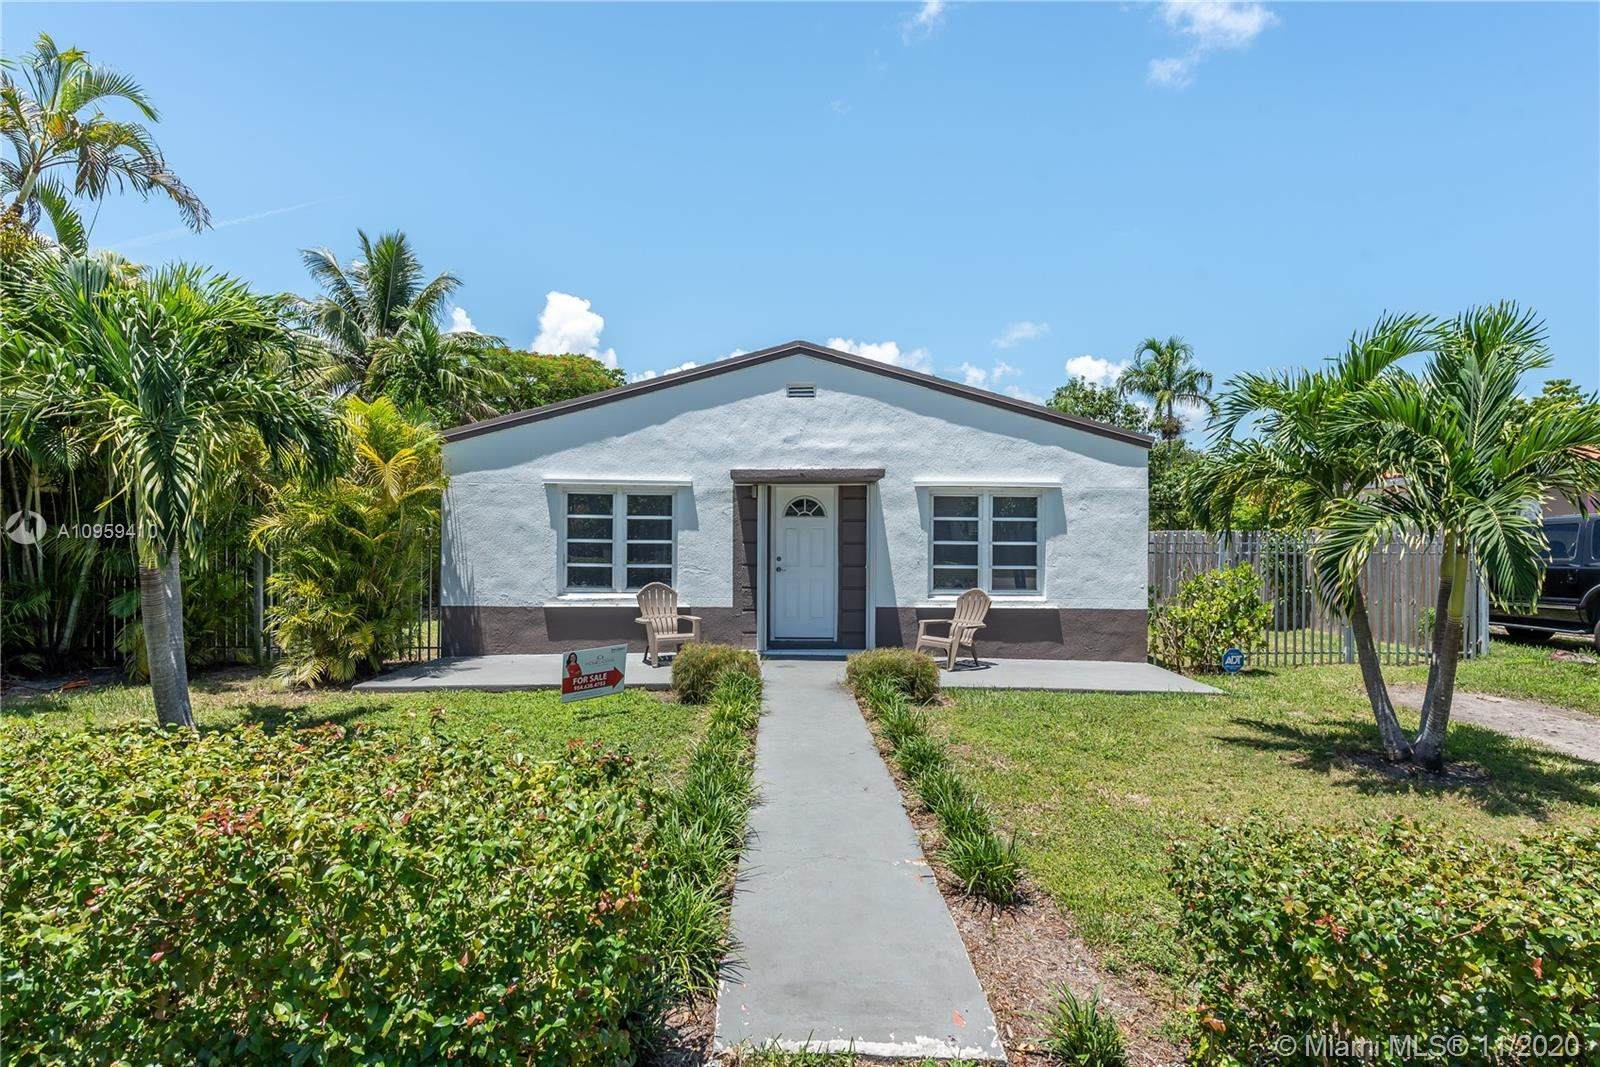 6531 SW 44th St, Miami, FL 33155 - #: A10959410